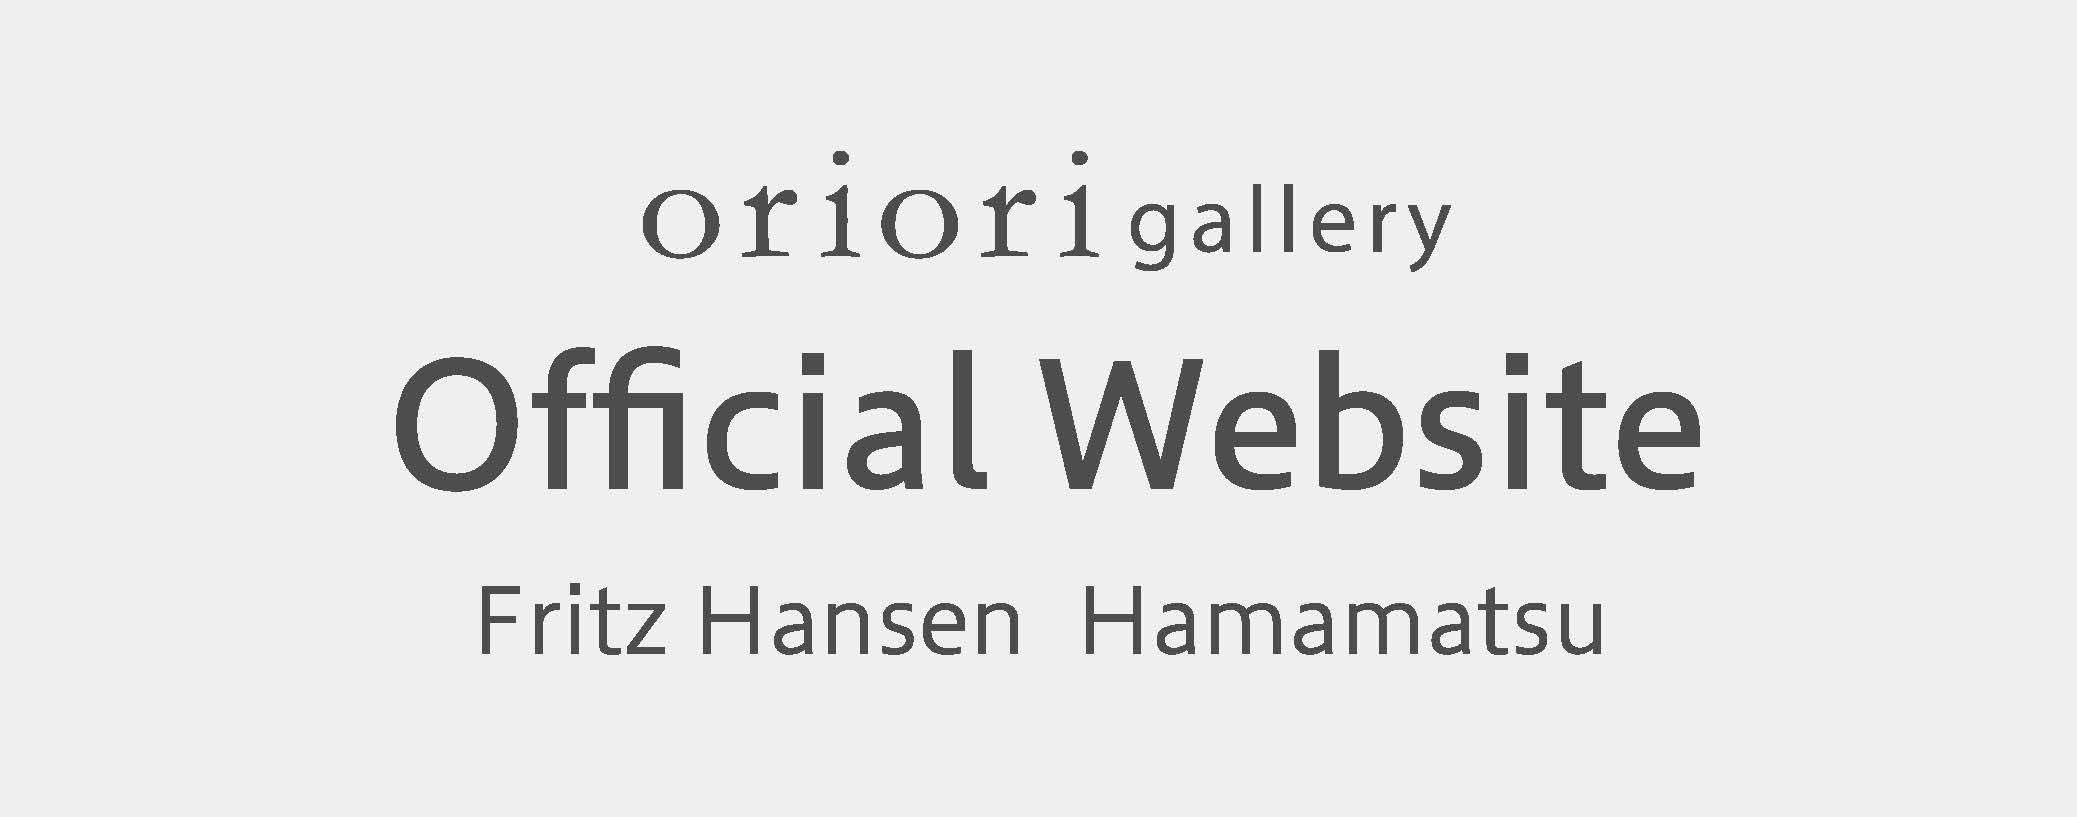 oriori gallery official websaite